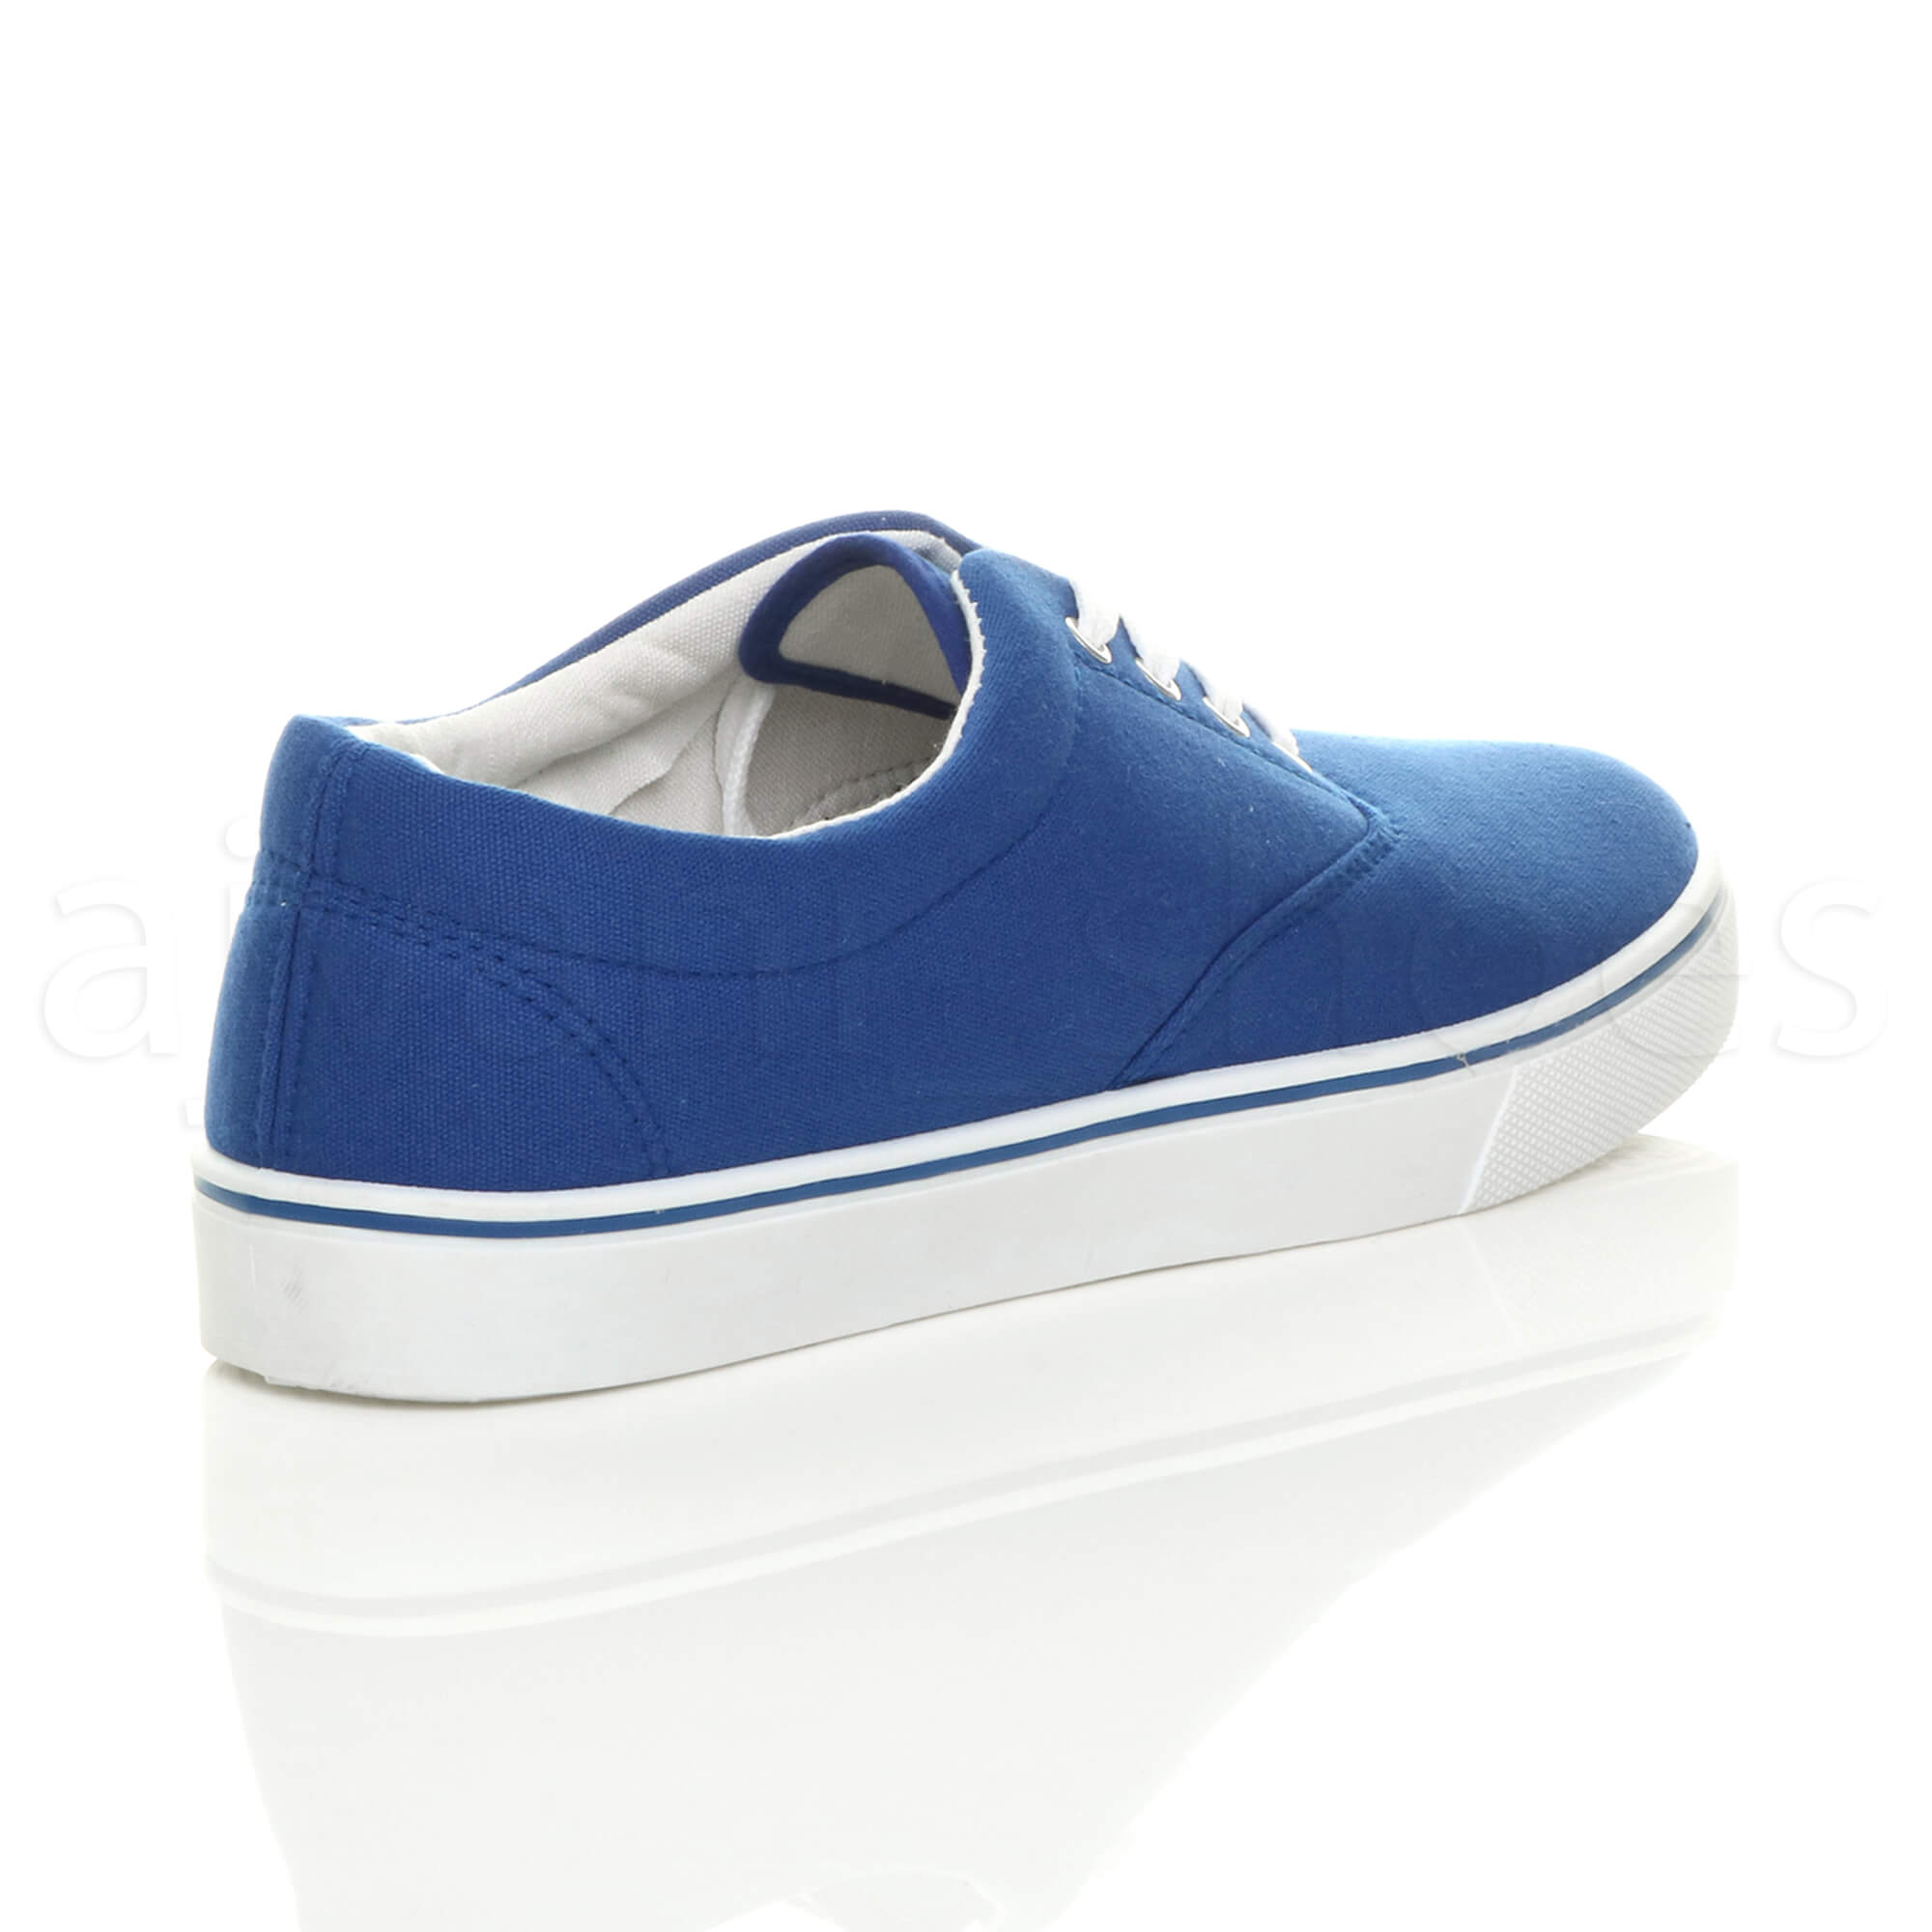 MENS-CANVAS-CASUAL-TRAINERS-PLIMSOLES-PLIMSOLLS-SHOES-LACE-UP-PUMPS-SIZE thumbnail 25